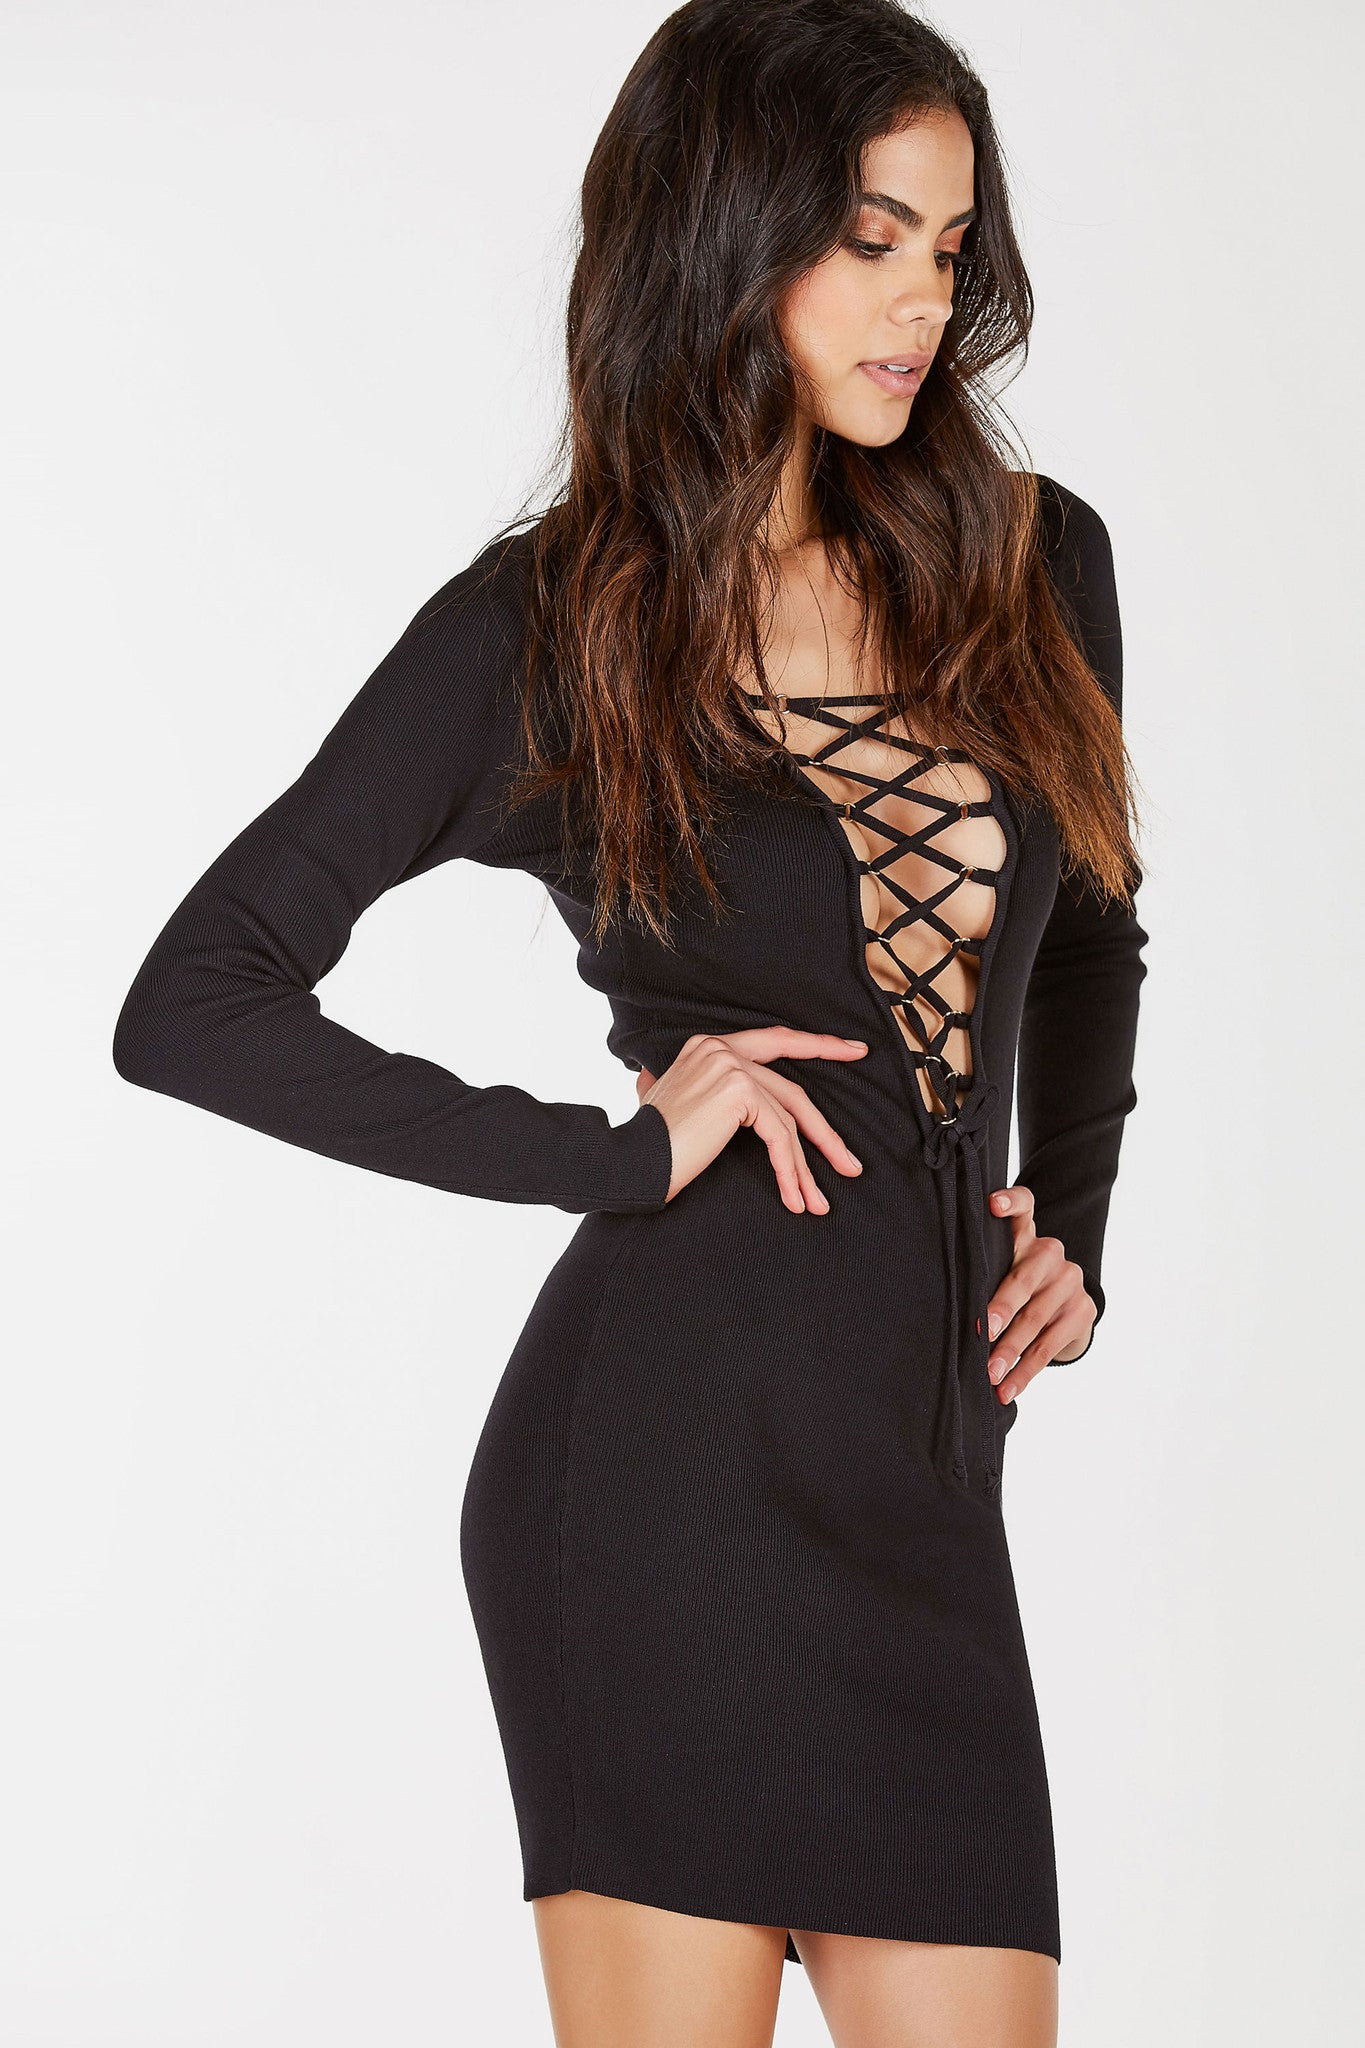 A comfortable ribbed midi dress with a daring deep V-neckline. Trendy lace up design with gold hardware hoops for added detail. Straight hem all around with a slim body-hugging fit. Great for evening parties or special dinner plans.